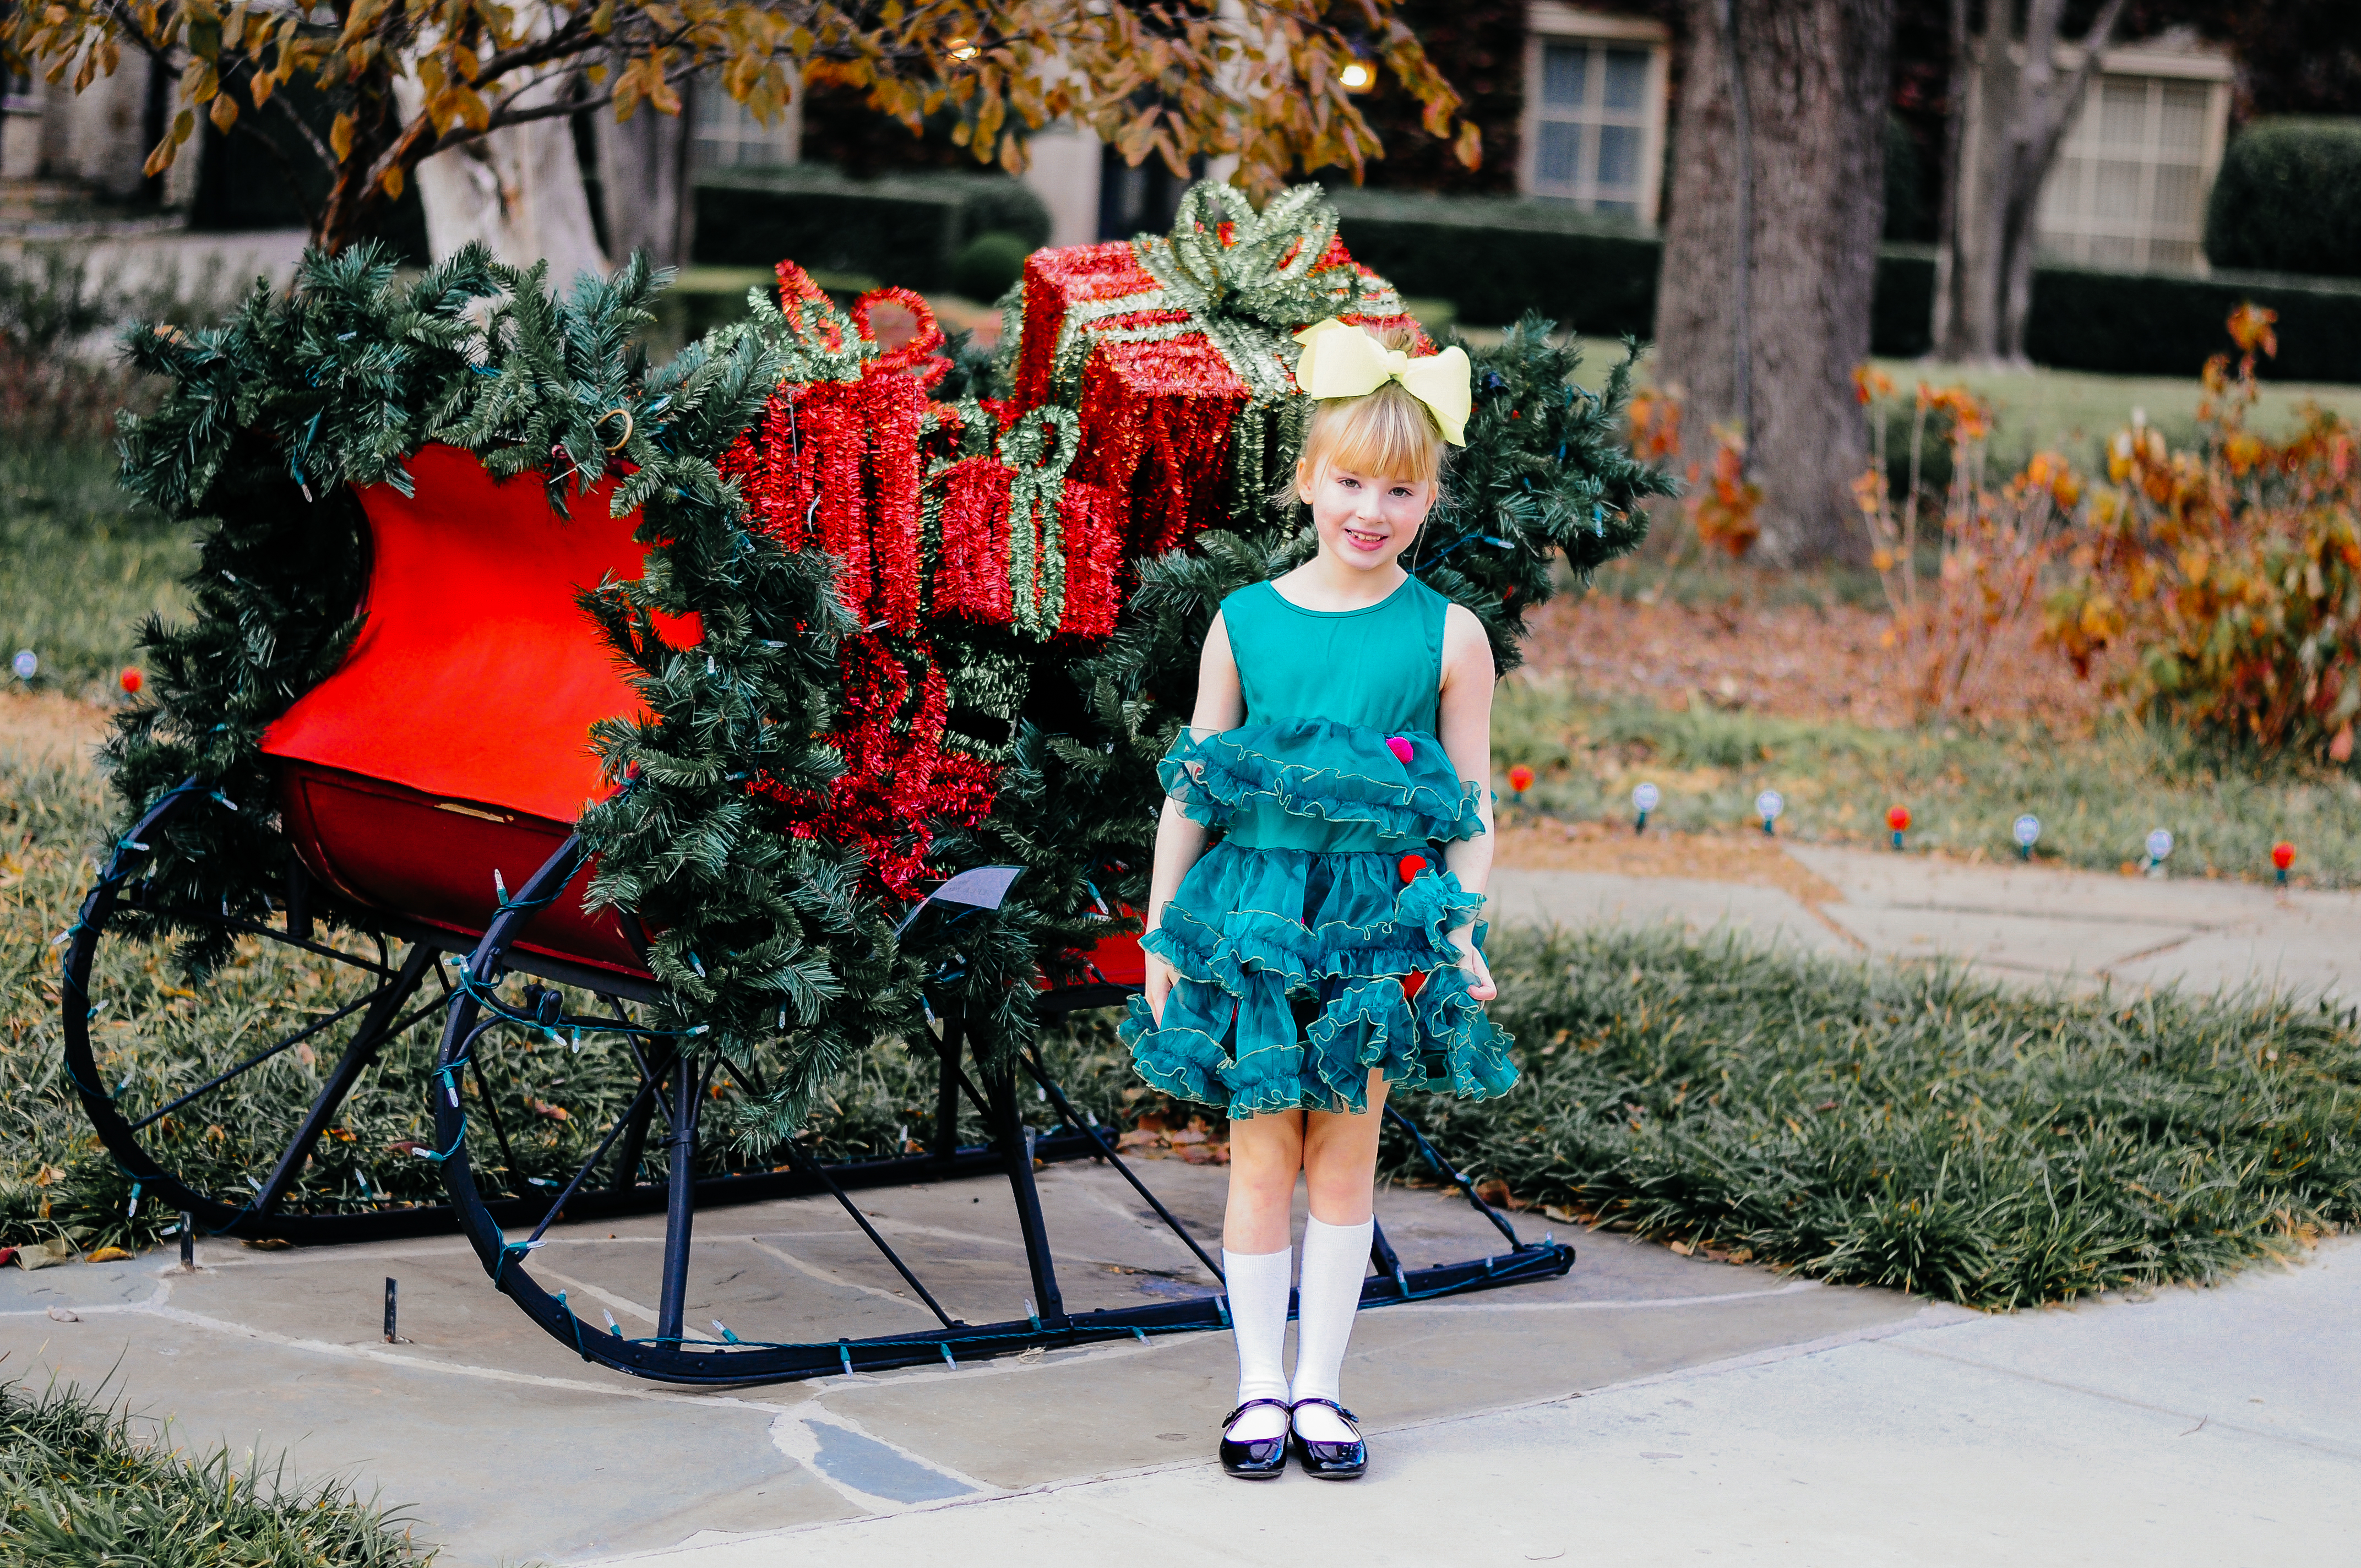 Annabelle Bowman in a Christmas tree dress from H&M